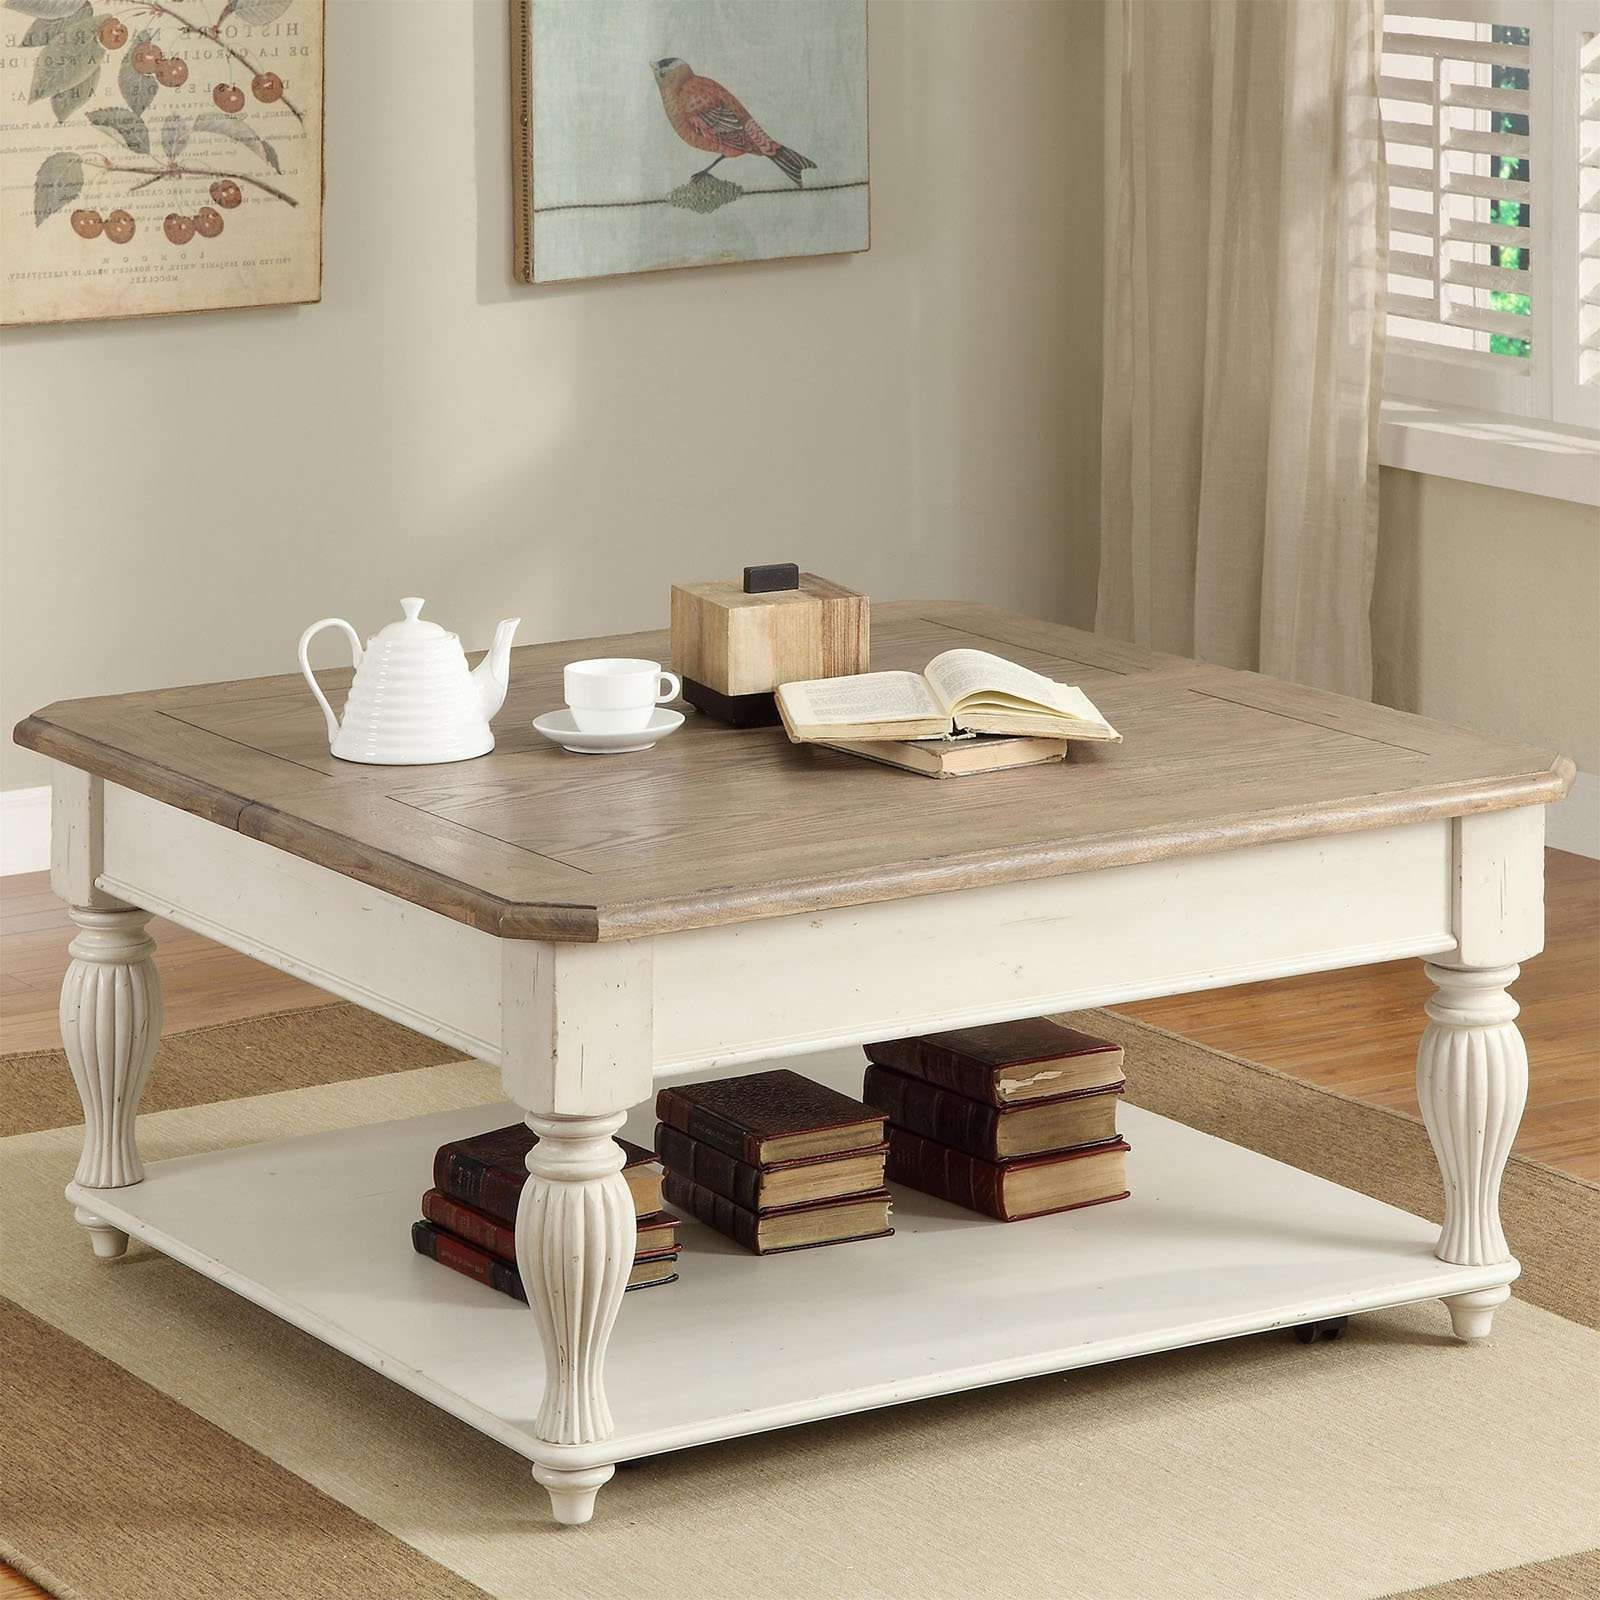 Coffee Tables : Furniture Cherry Wood Coffee Table Design Ideas Intended For Well Known Dark Wood Square Coffee Tables (View 13 of 20)